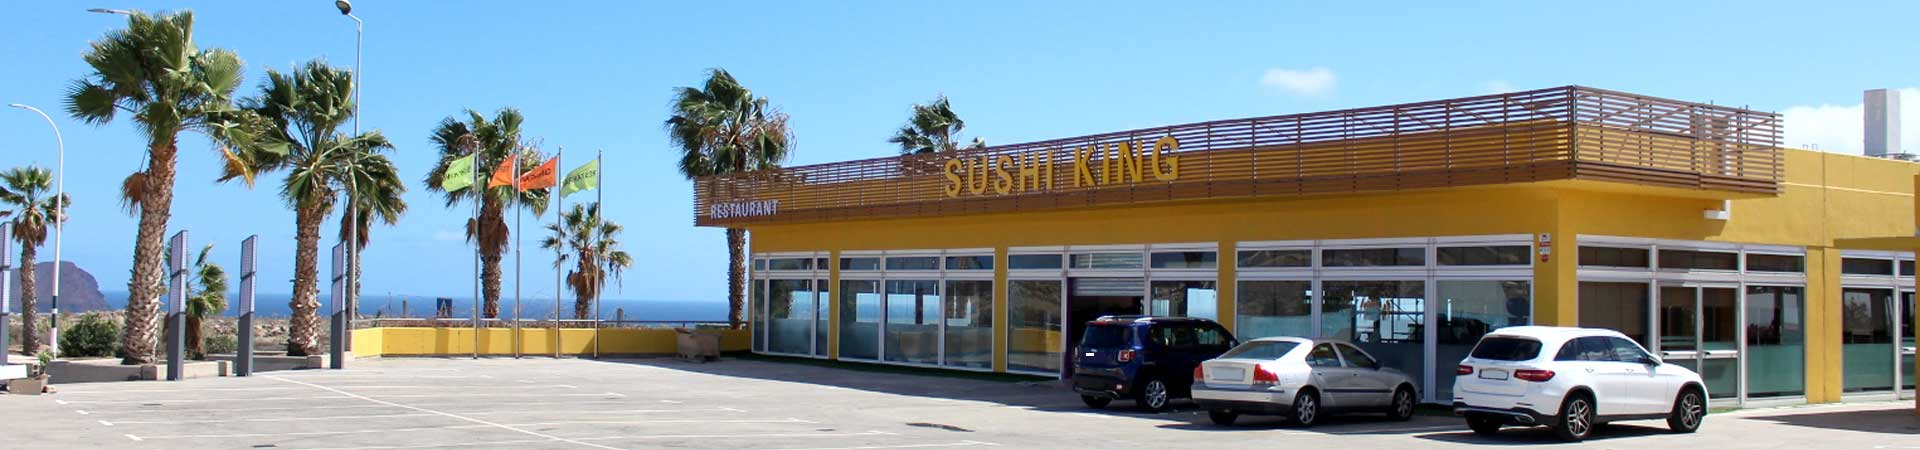 http://www.goodmorningtenerife.com/wp-content/uploads/2018/04/03_slide_sushi-king-1920×450-good-morning-tenerife.jpg